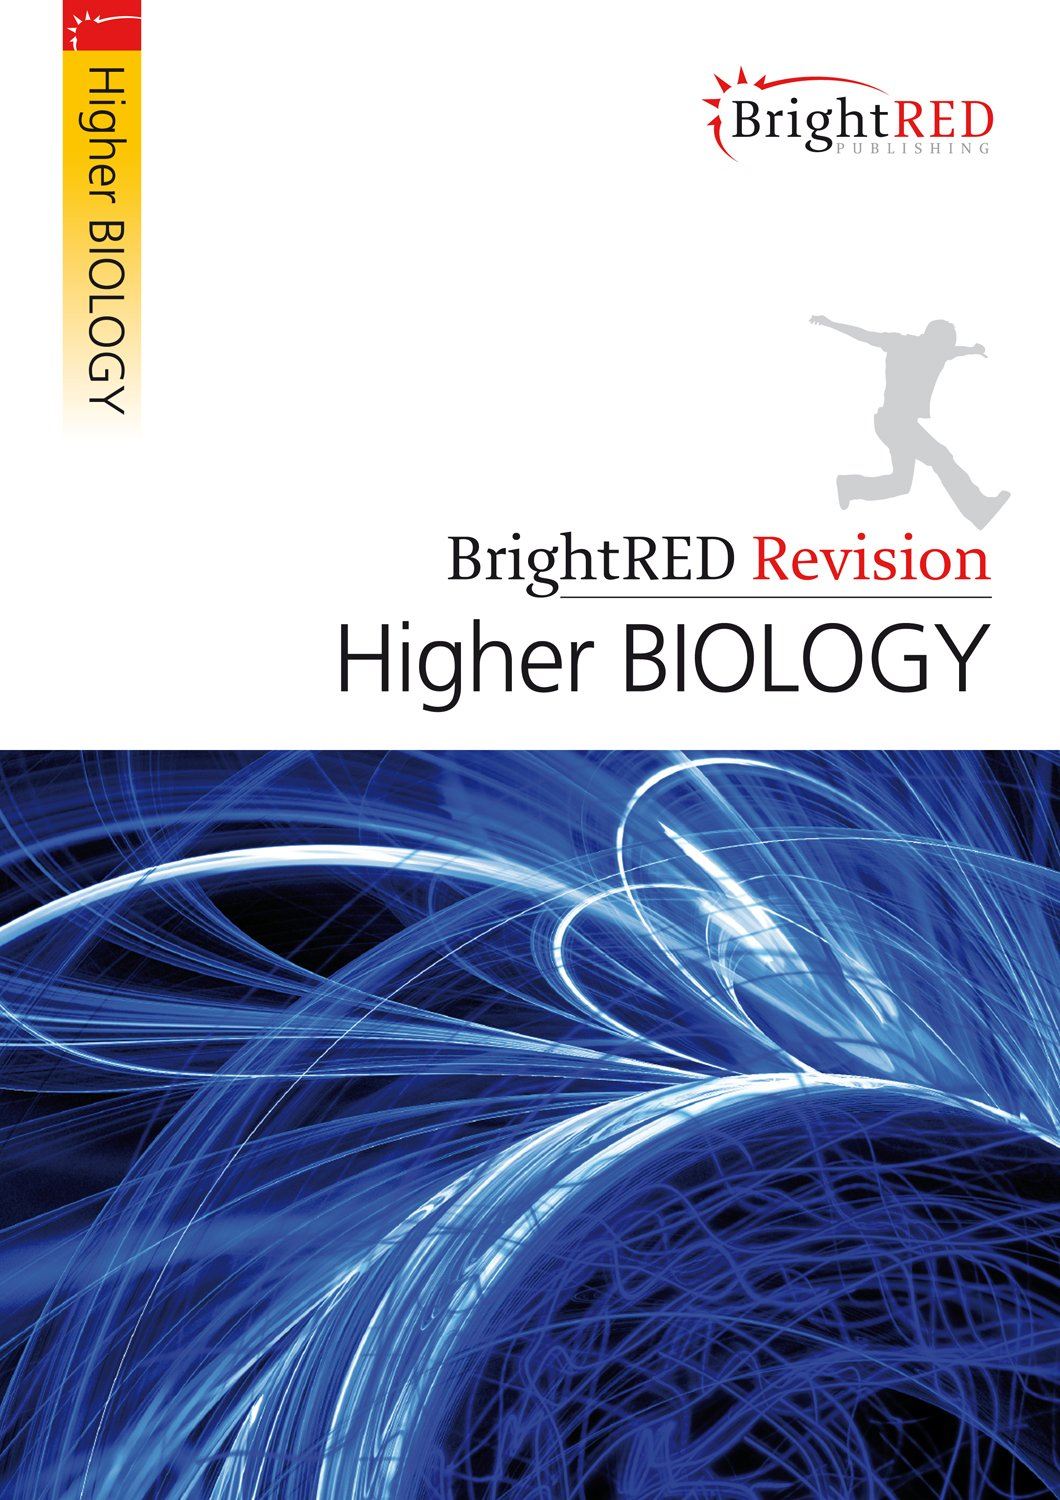 Higher Biology (Brightred Revision) pdf